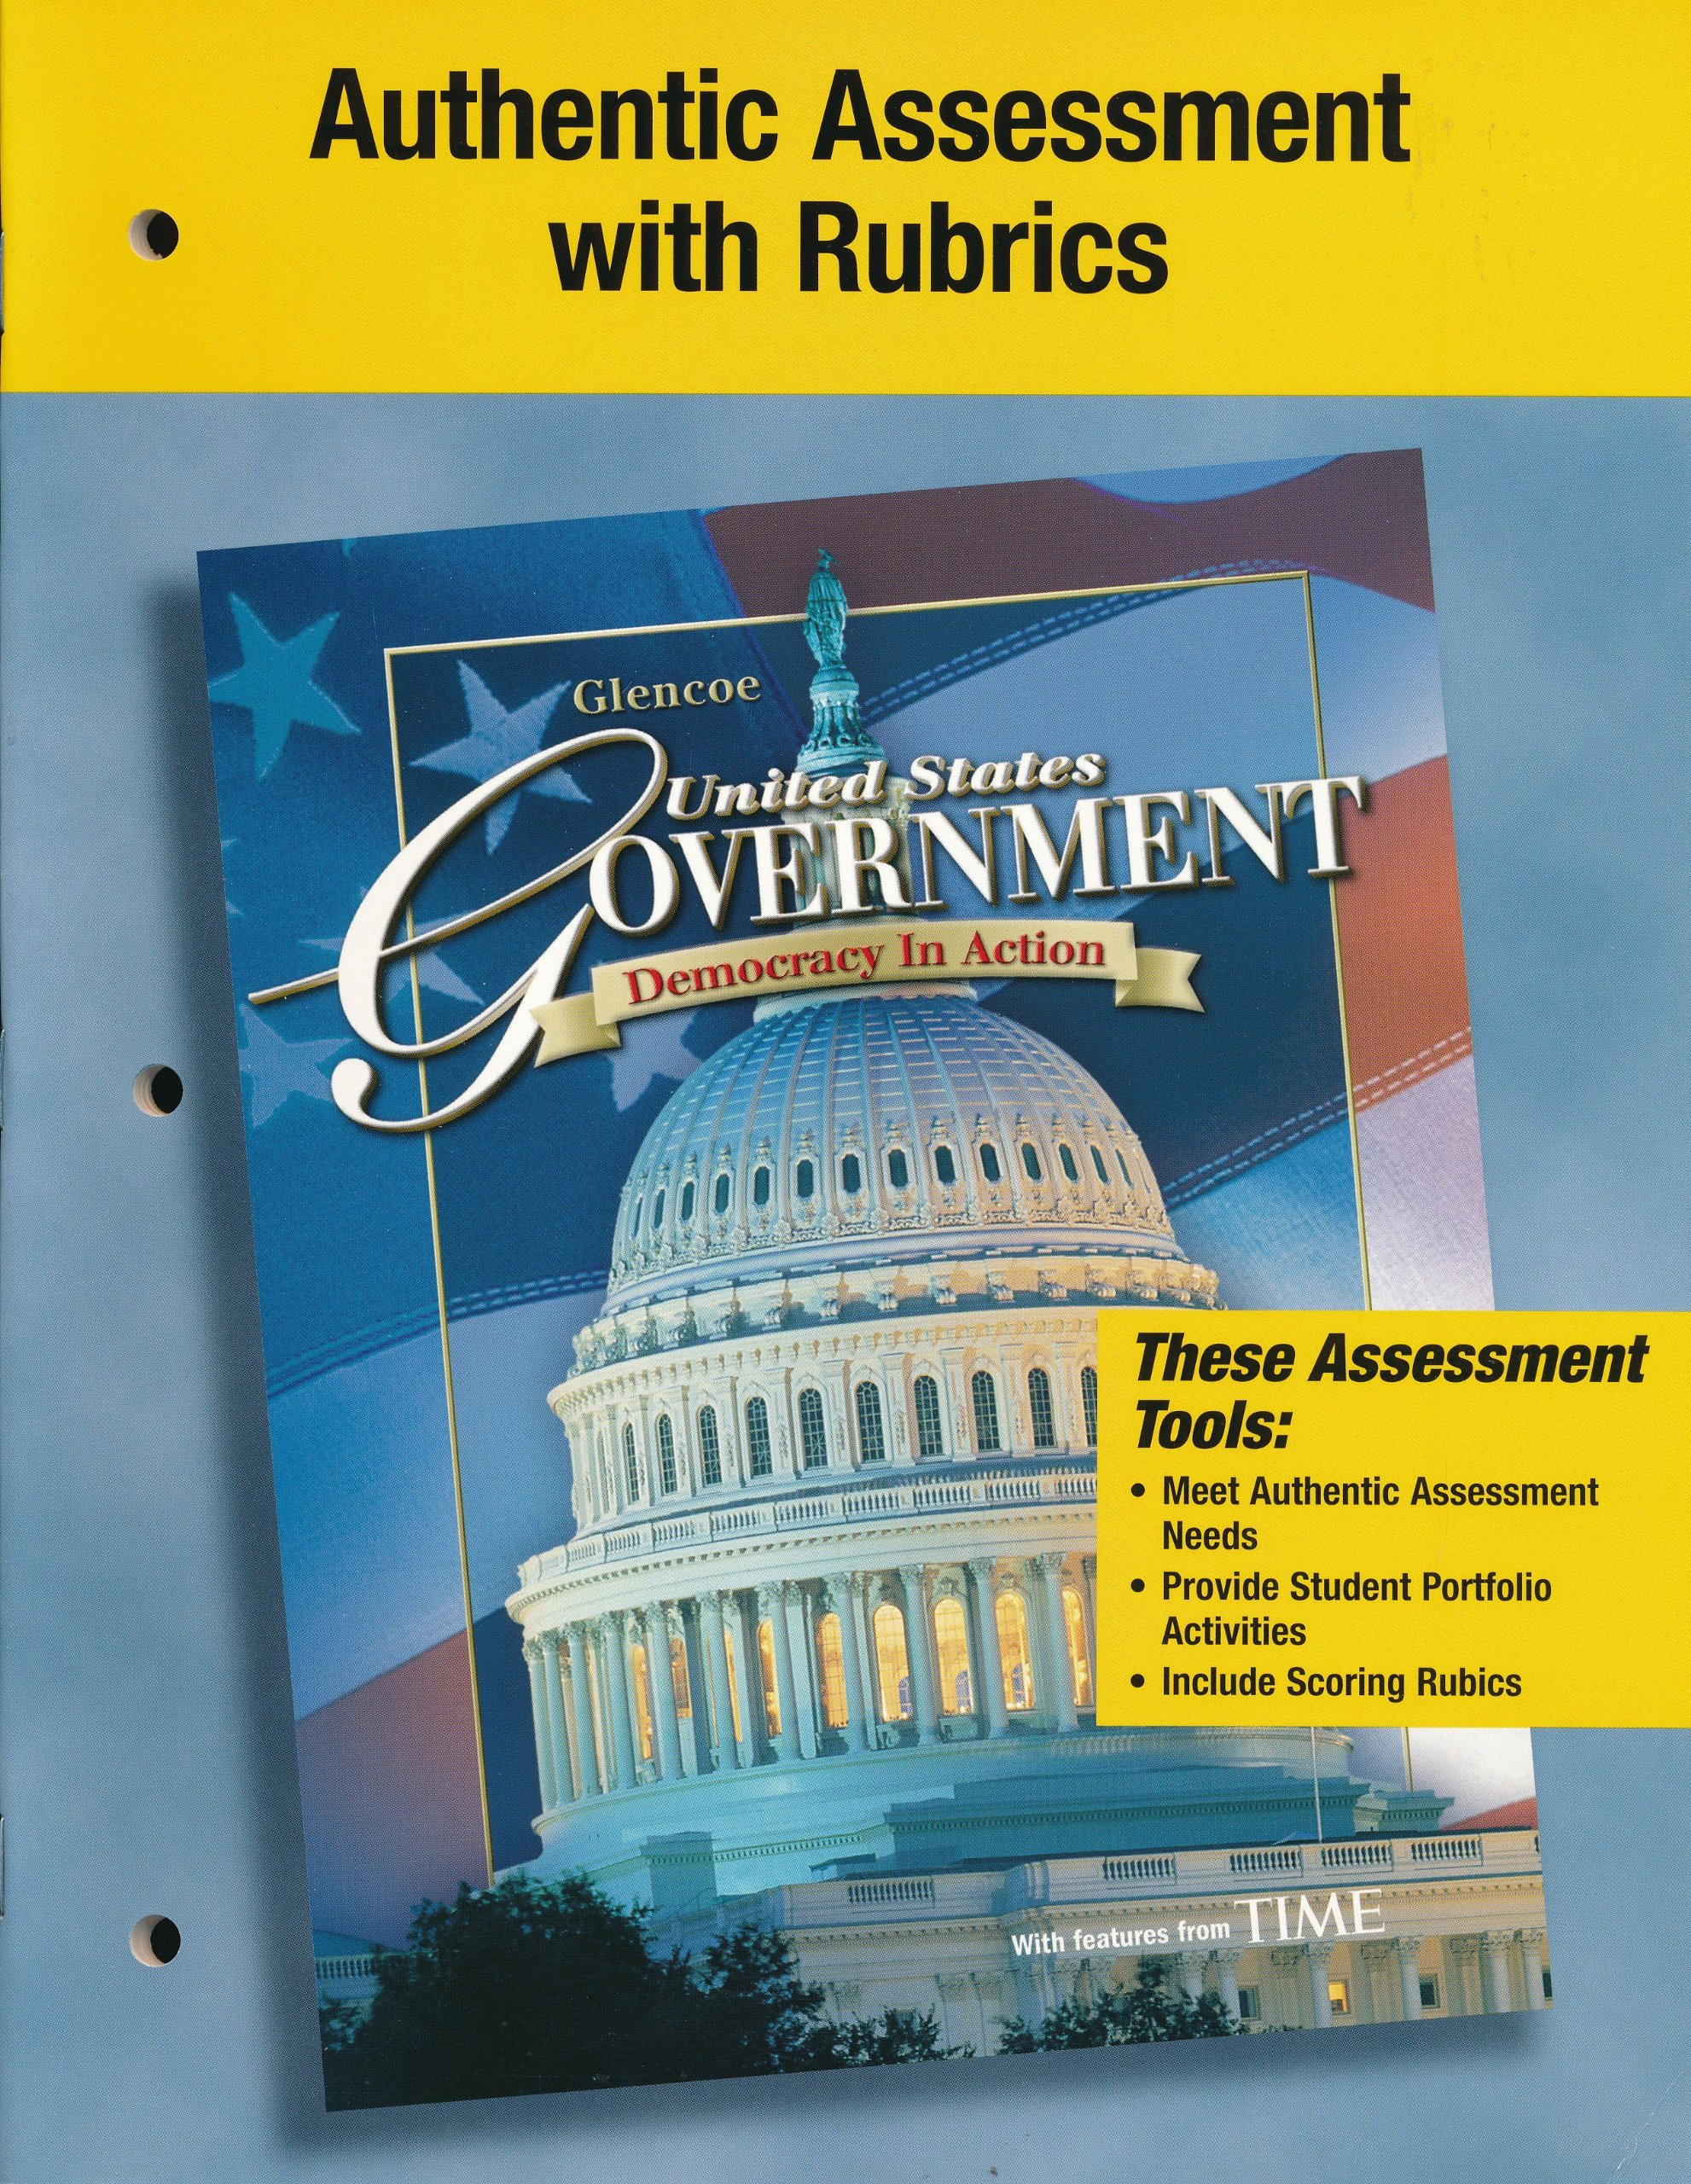 Authentic Assessment with Rubrics (United States Government, Democracy in  Action): Glencoe: 9780078786884: Amazon.com: Books